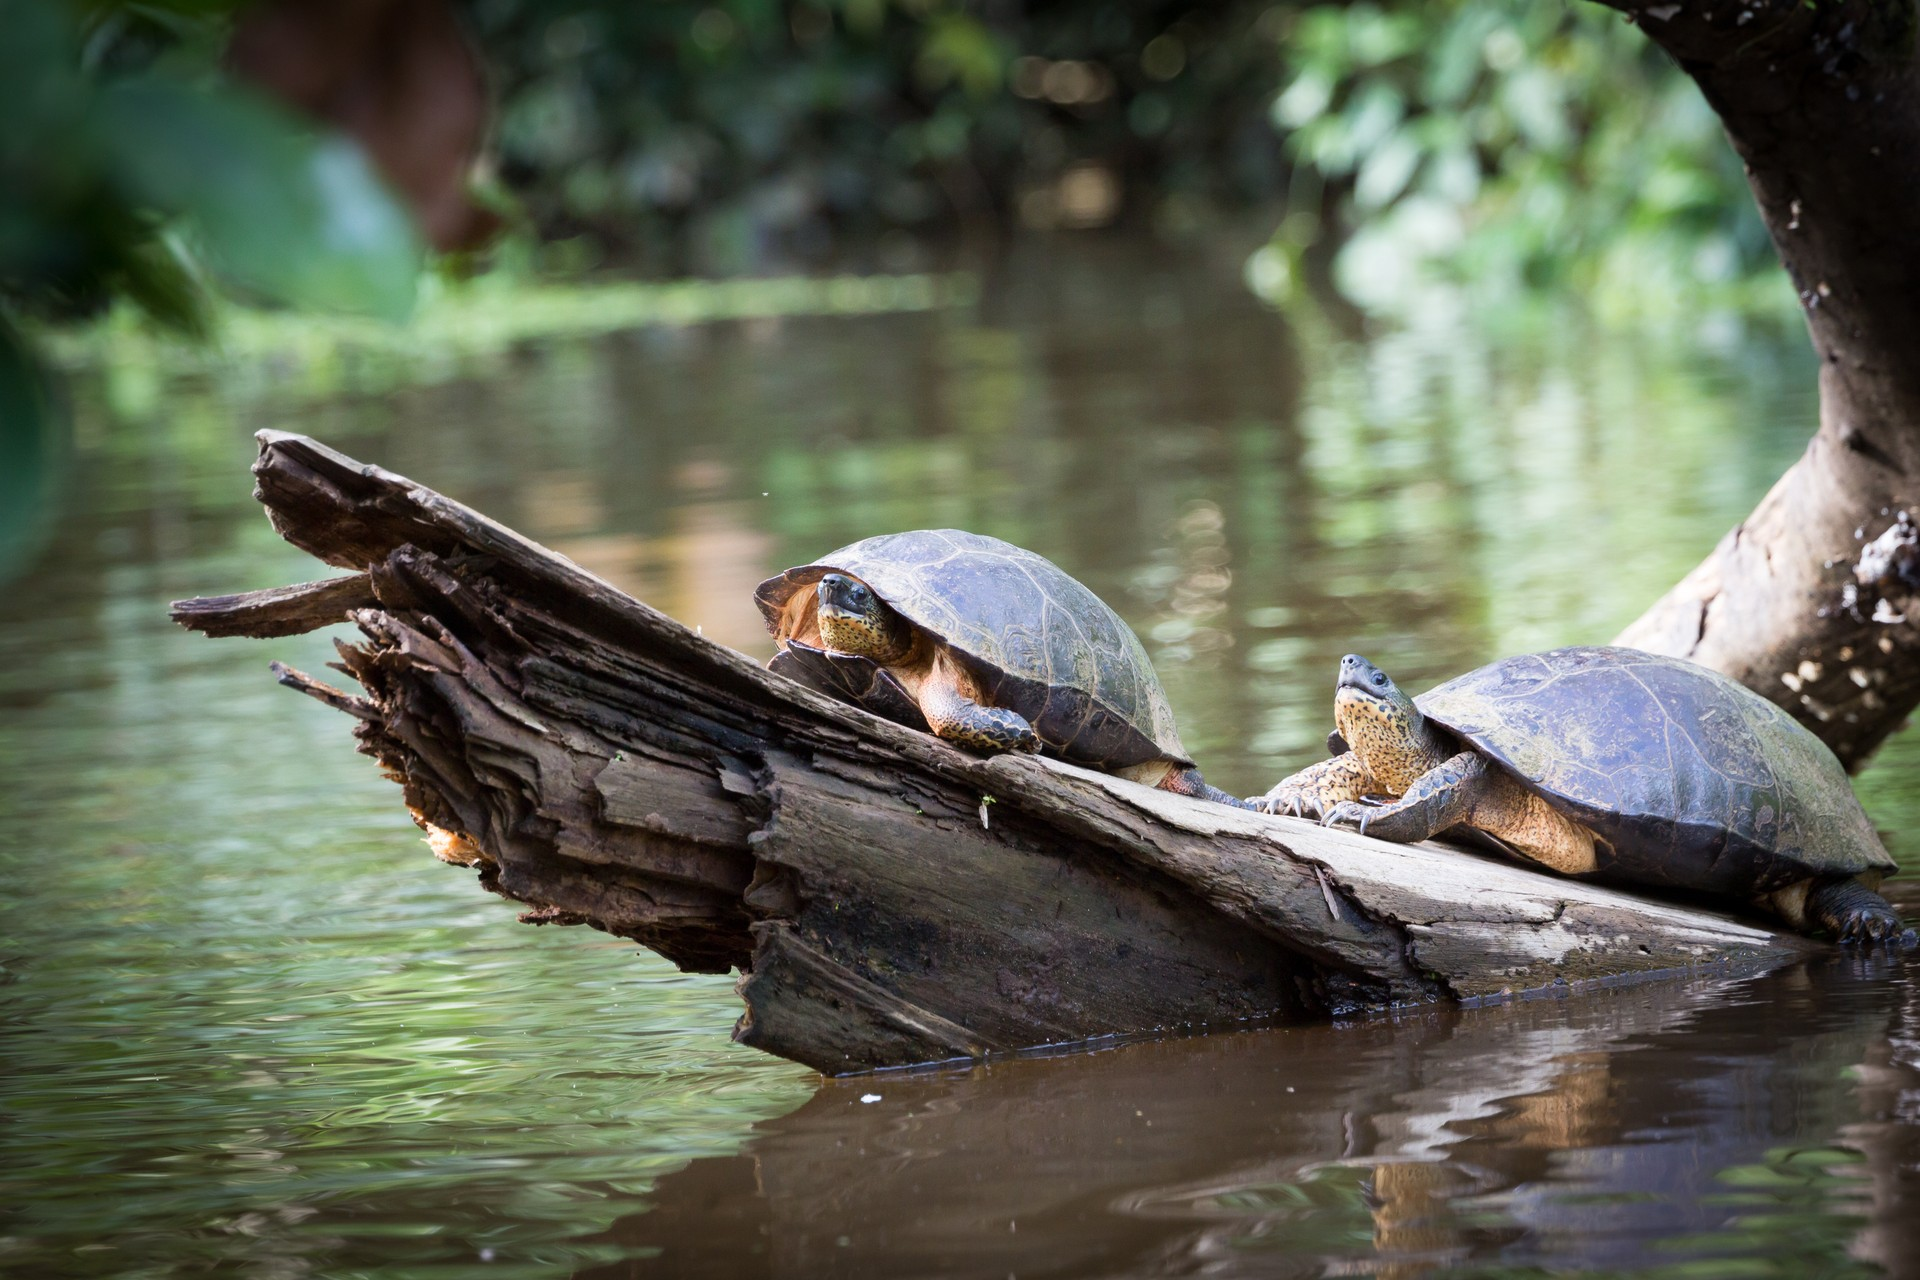 The National Parks of Costa Rica: Turtles